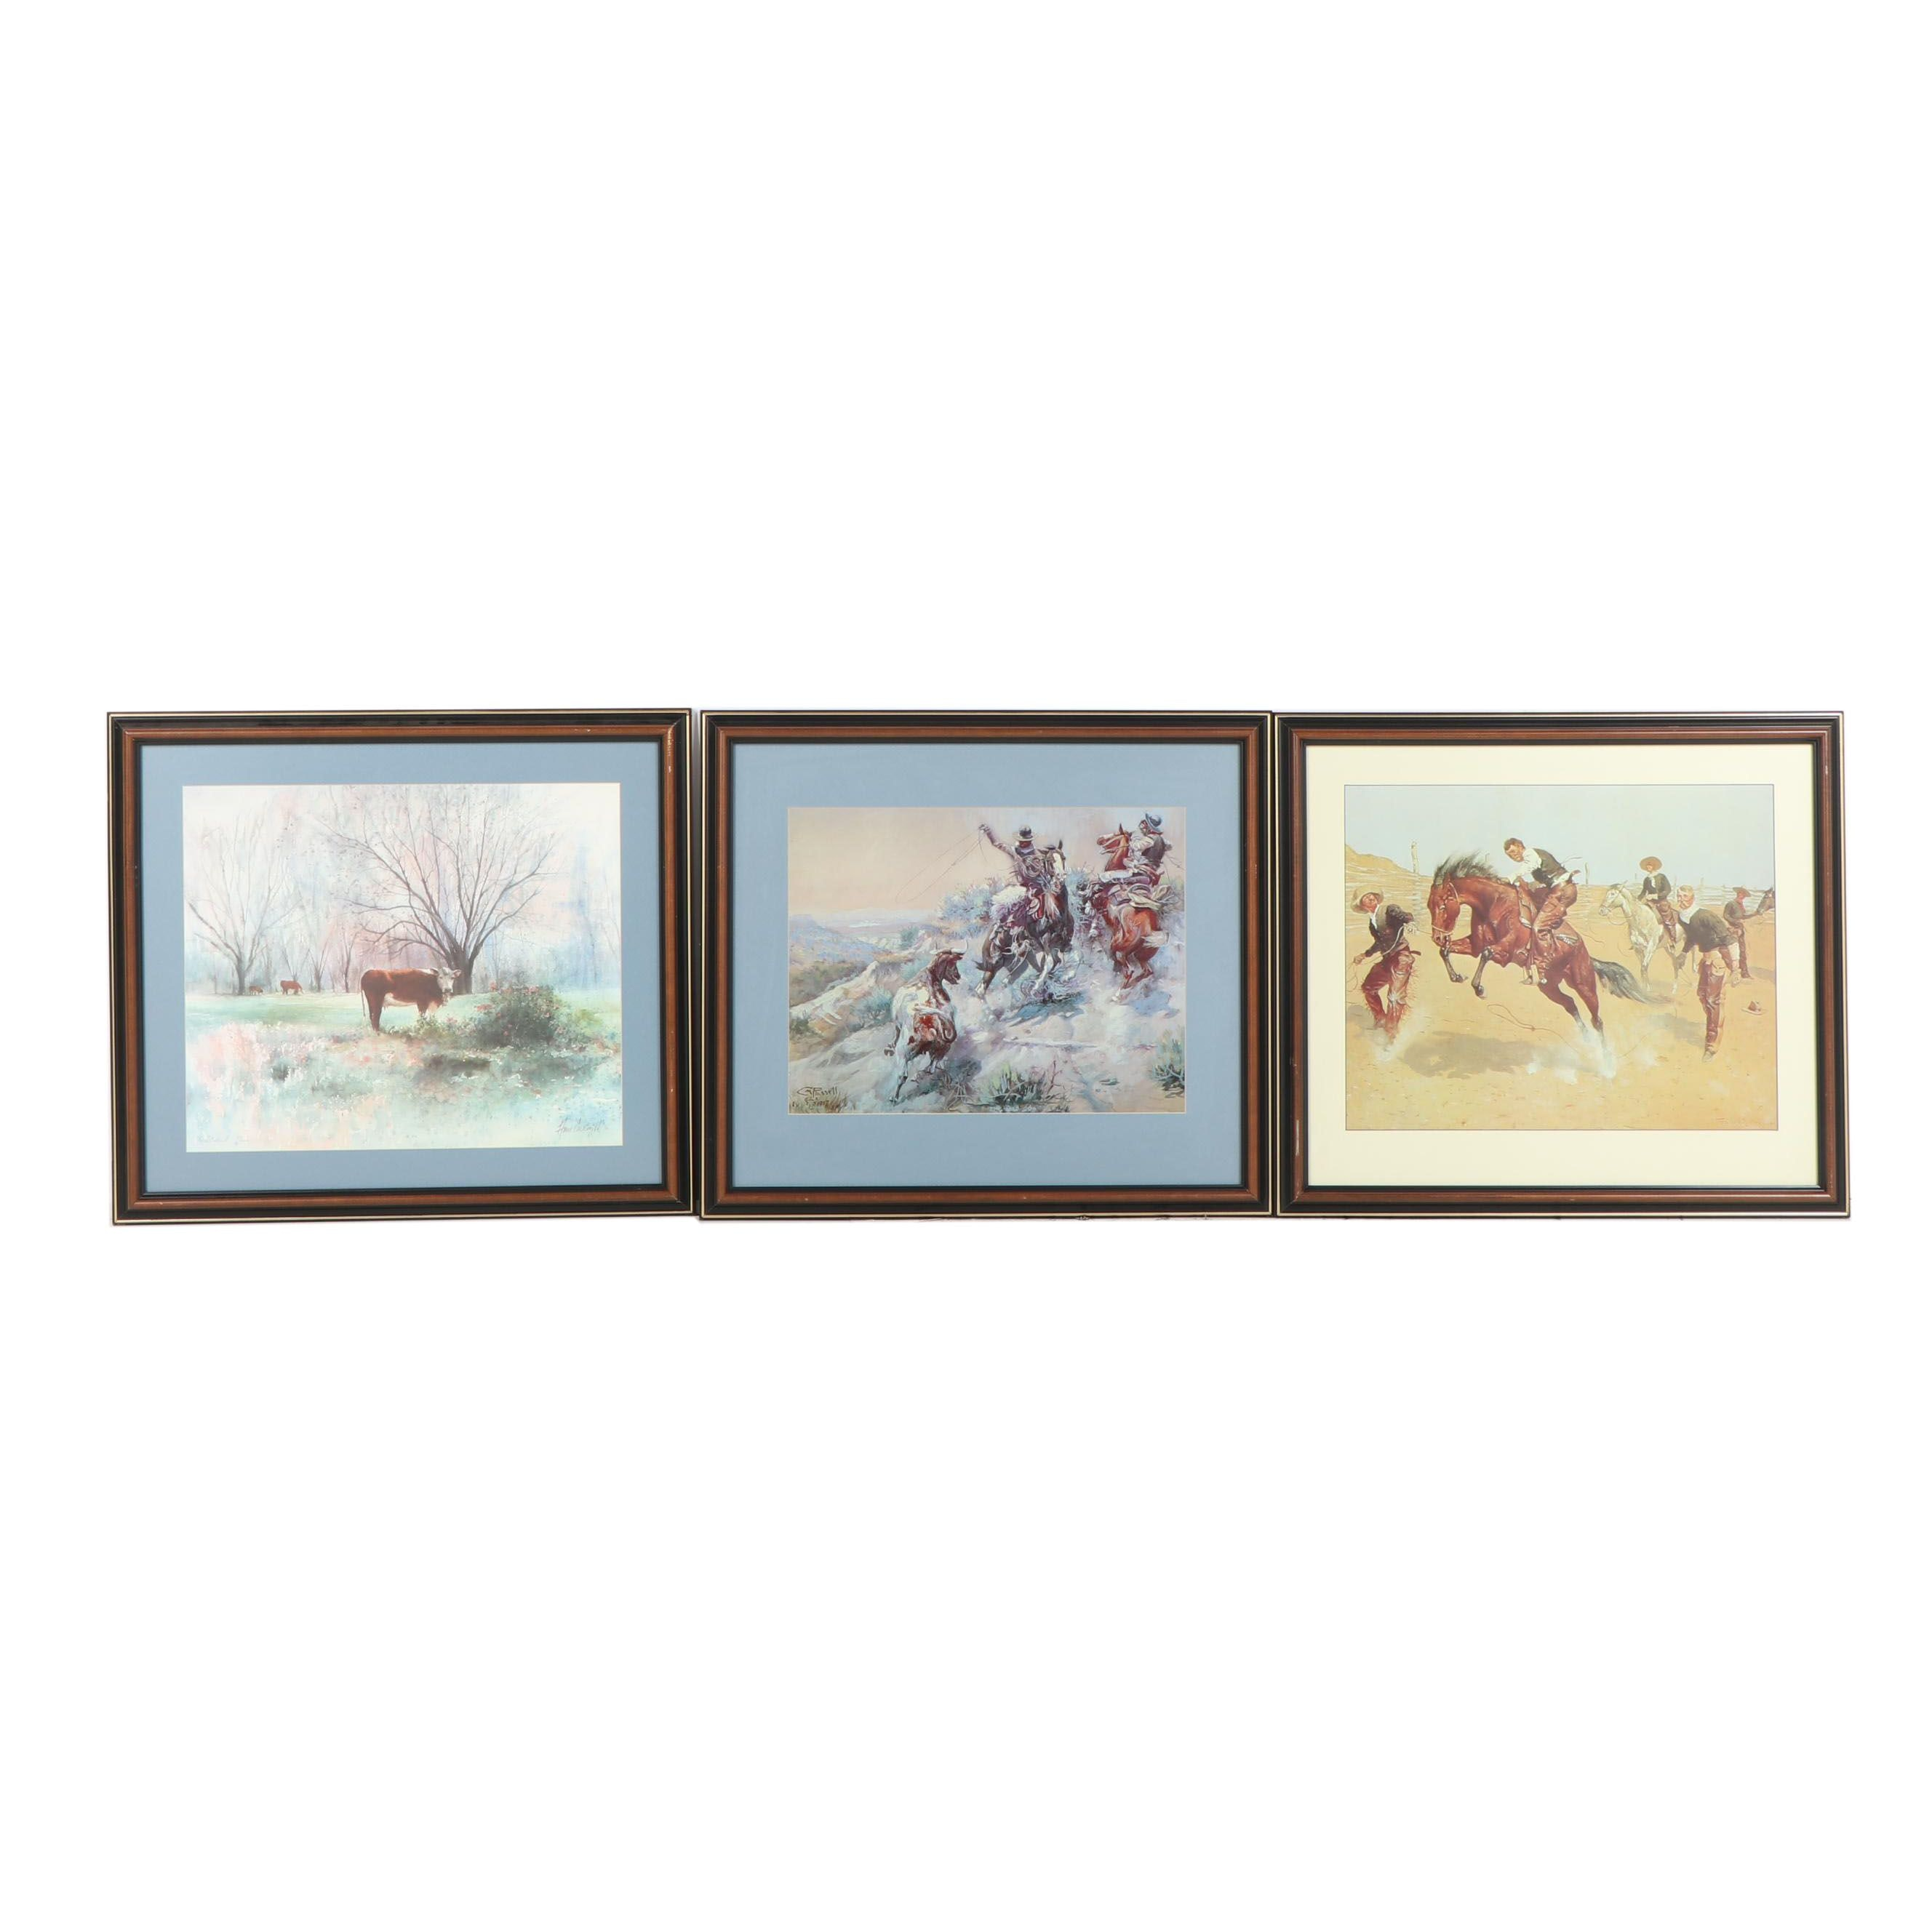 Western Themed Offset Lithographs Including after Fredric Remington